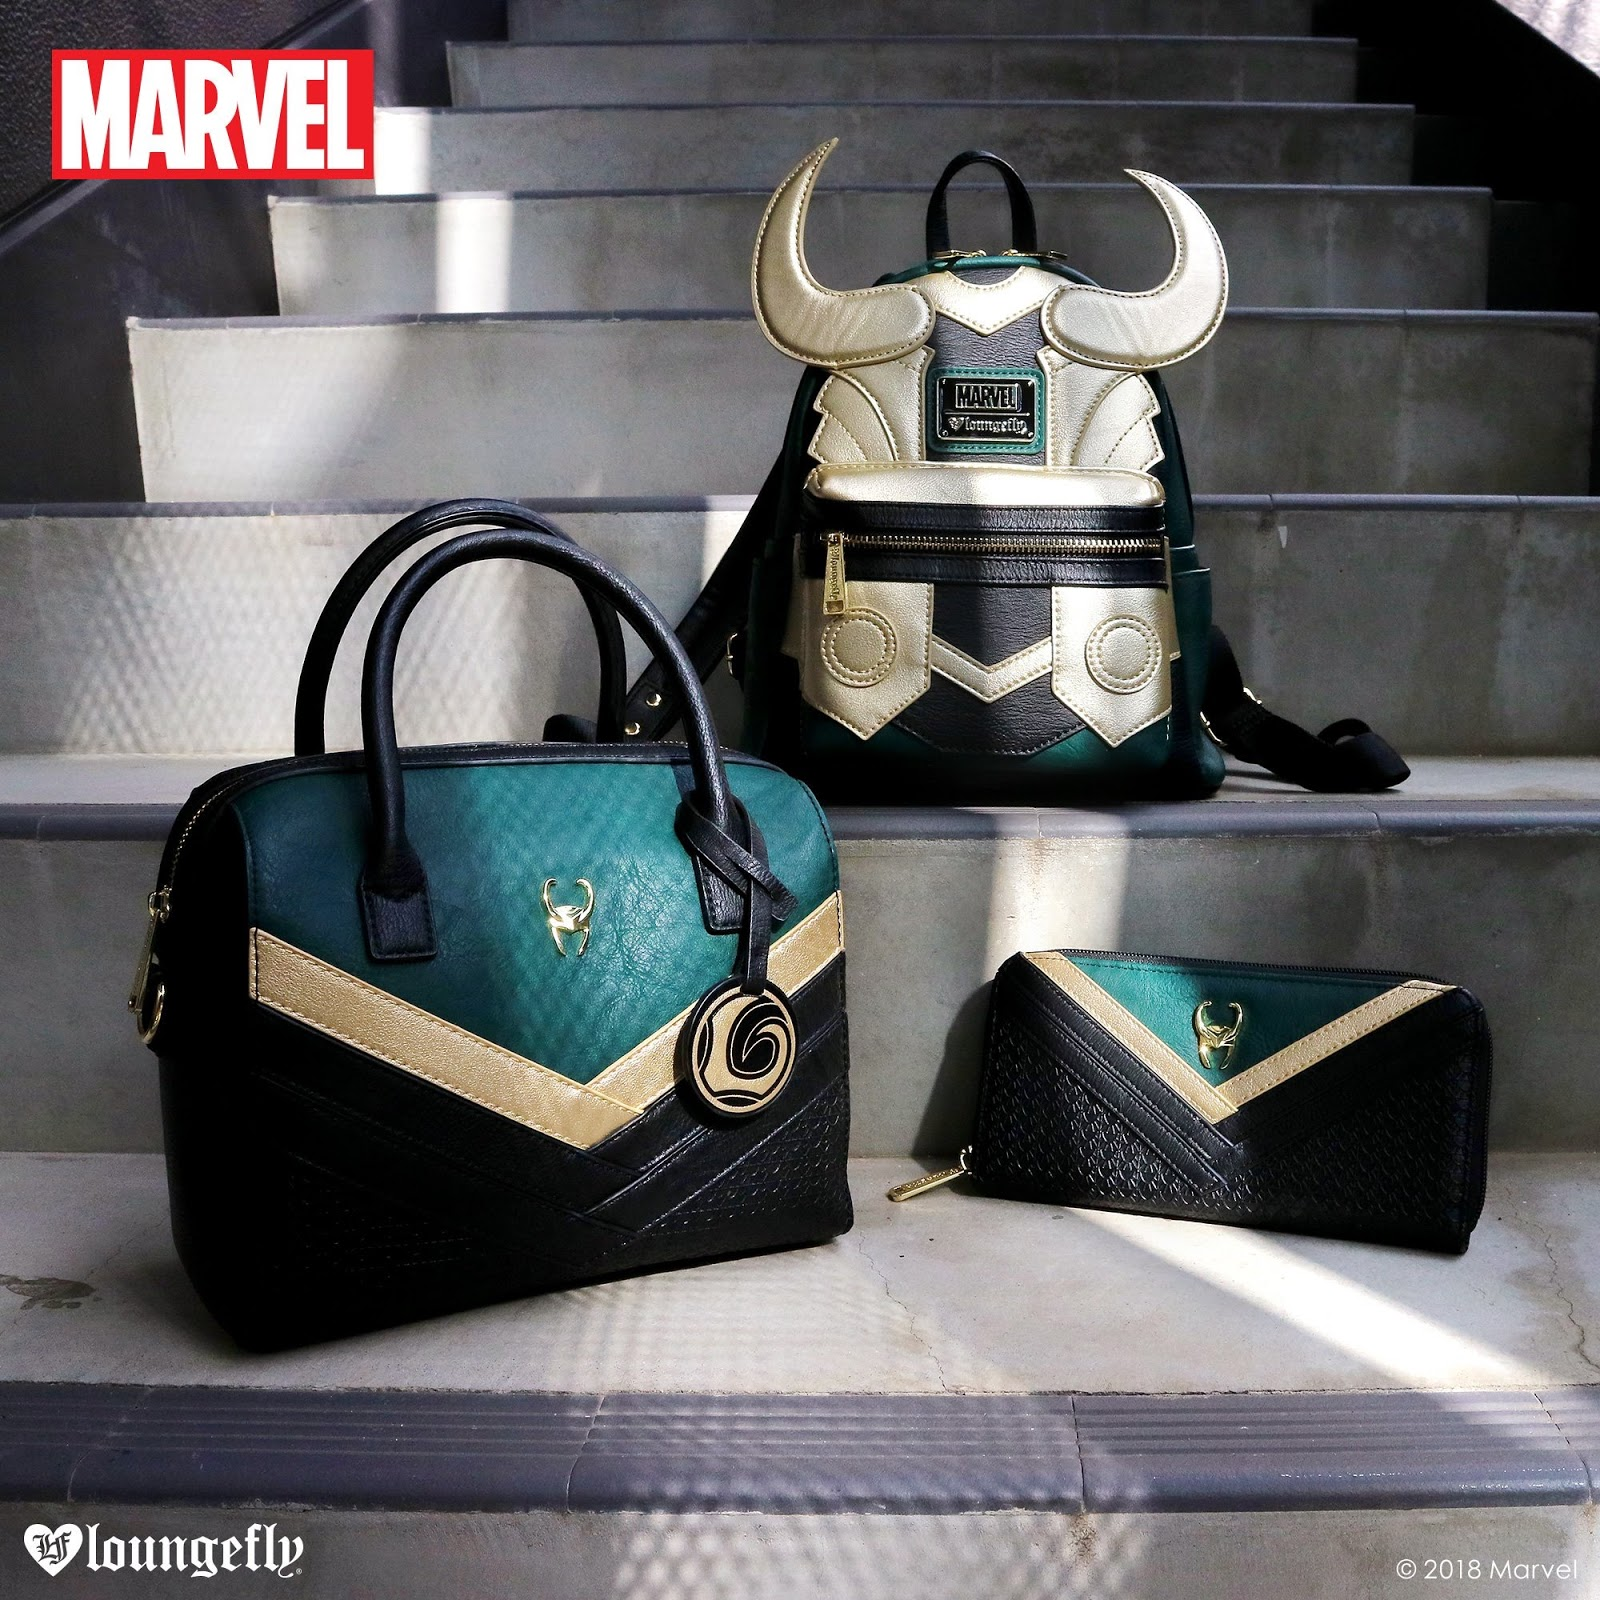 bb1a3532ebe1 A look at some of the amazing Loki related merchandise for sale at Tokyo  Comic Con.   I need those Loki socks